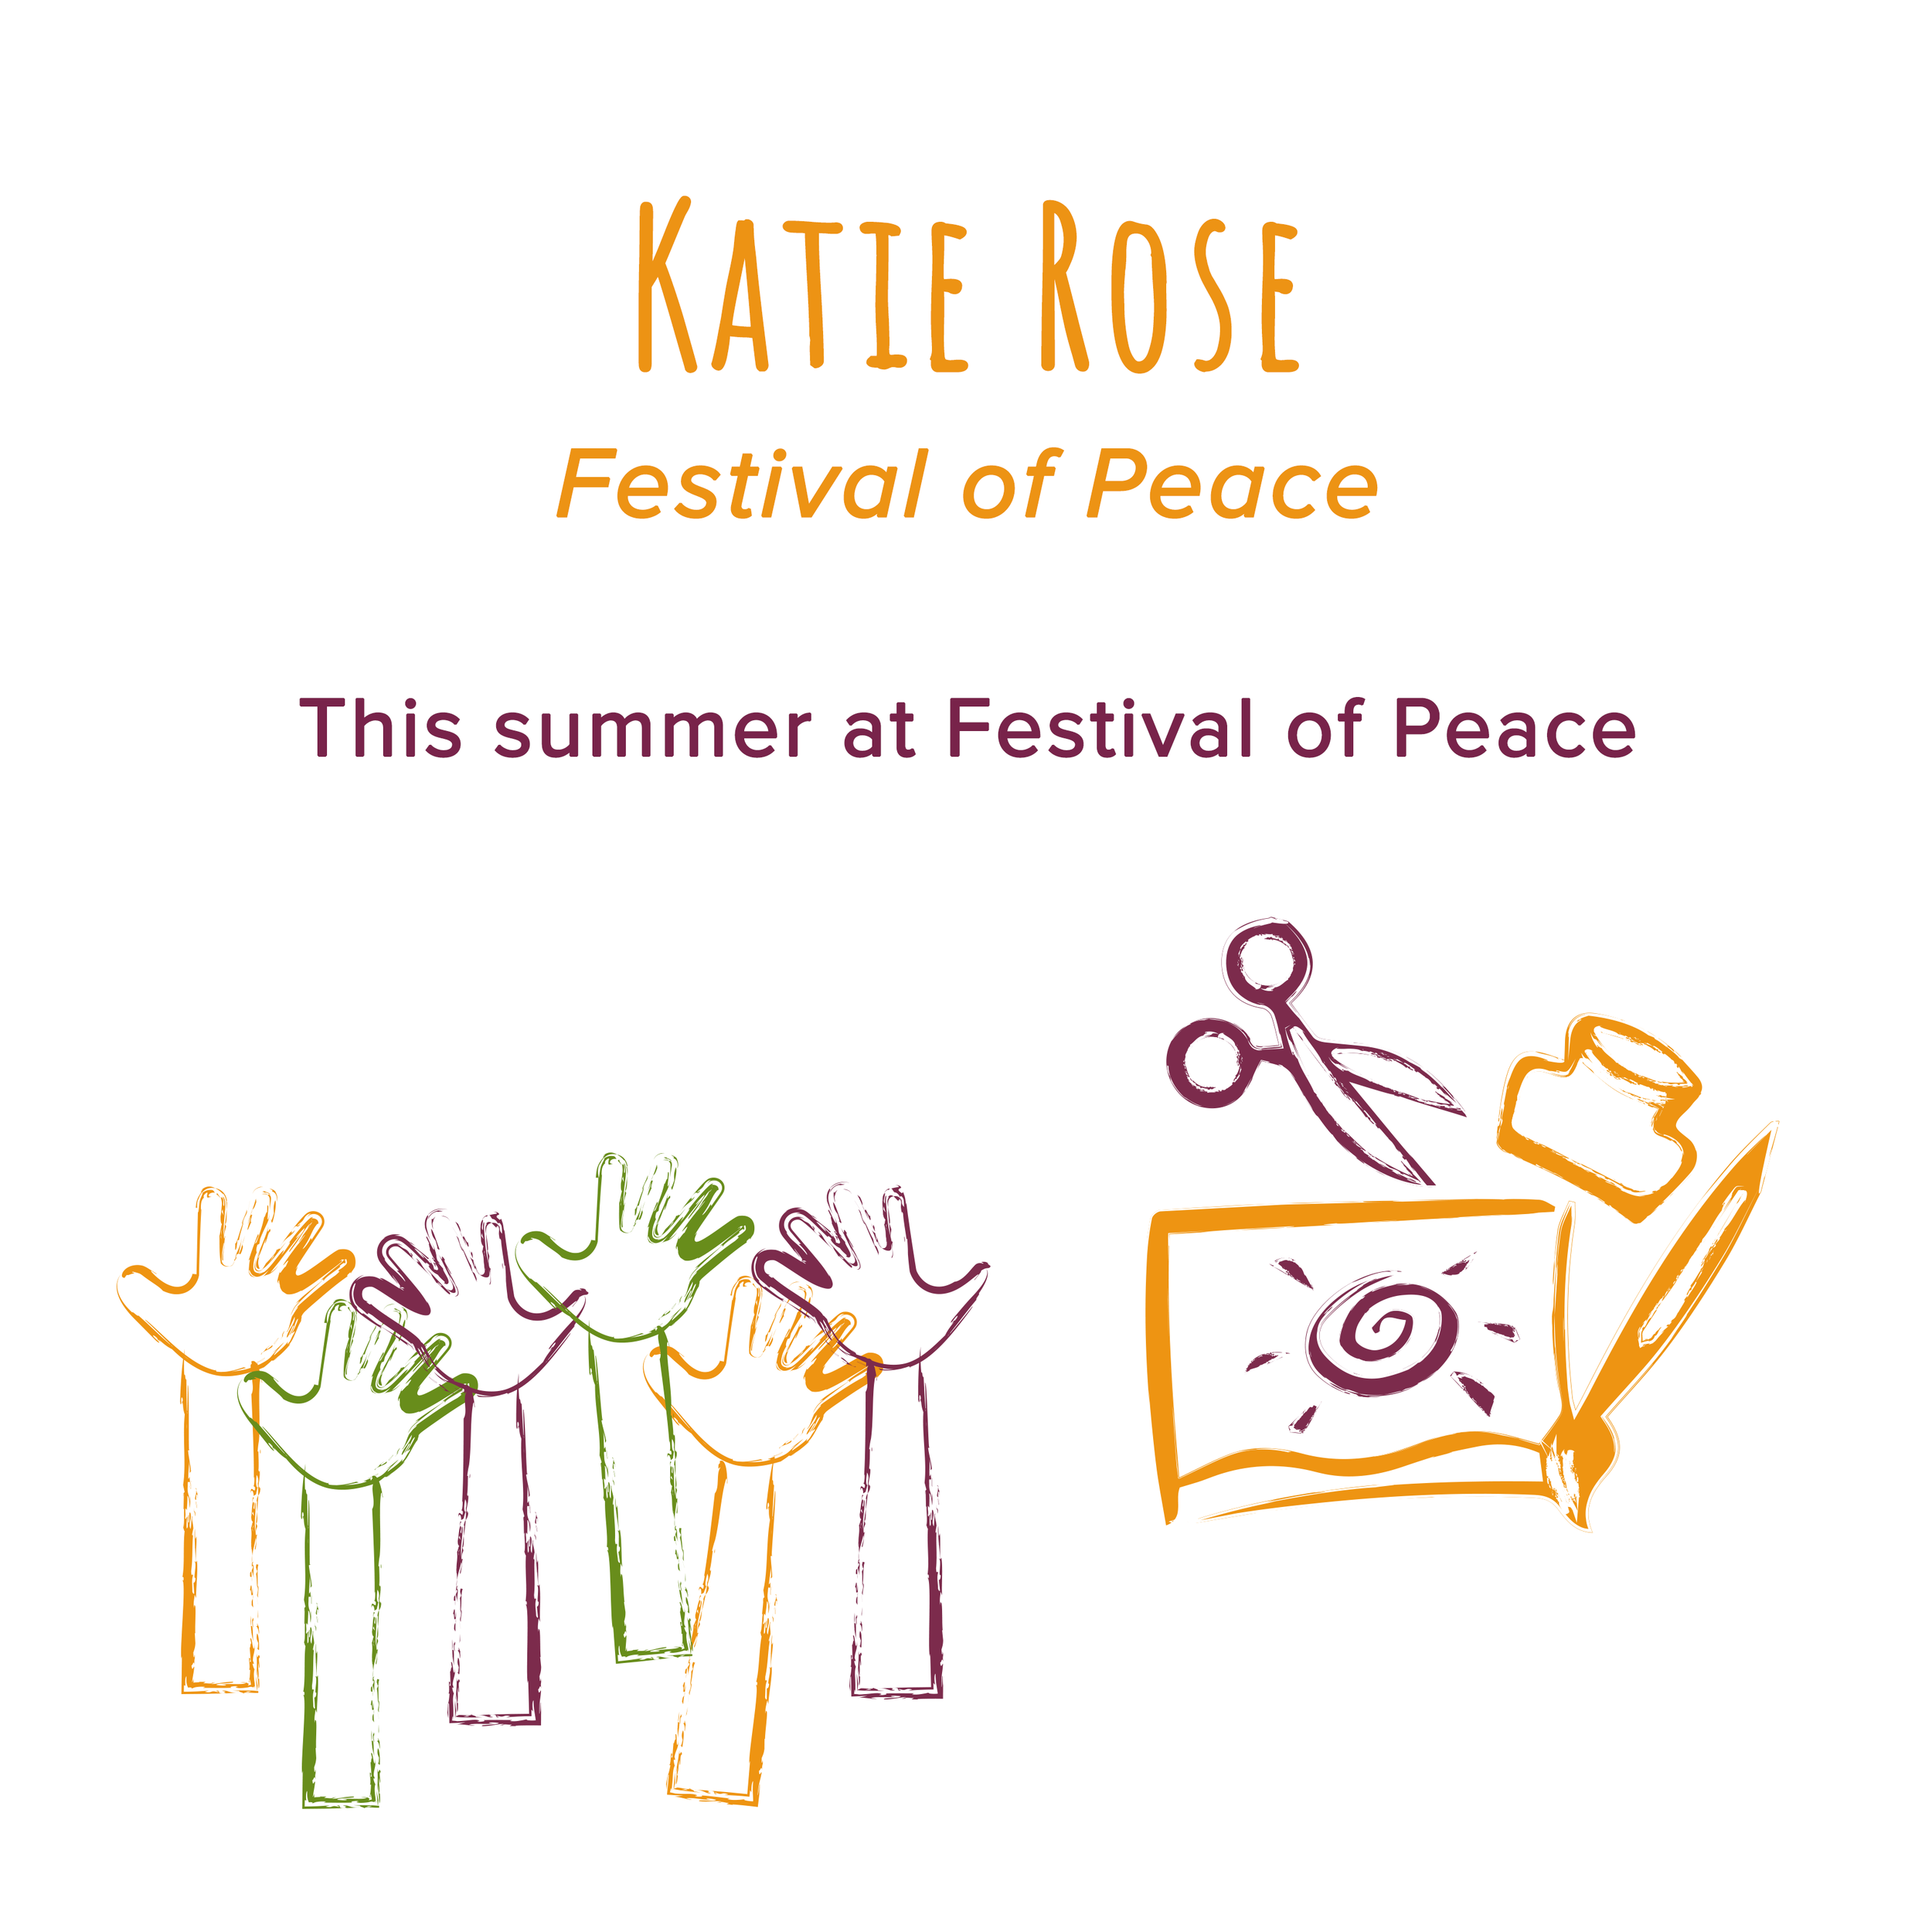 March 2018   Katie is involving young people in the Festival of Peace by:  - Inviting them to take part in the London Mozart Players community performances  - Vocal Rumble; a workshop & performance opportunity with world class vocal artists  - Young People Insight - The Kickback; a forum about peace  - Celebrate Life & APOW; young refugee group to hold an event about peace and belonging